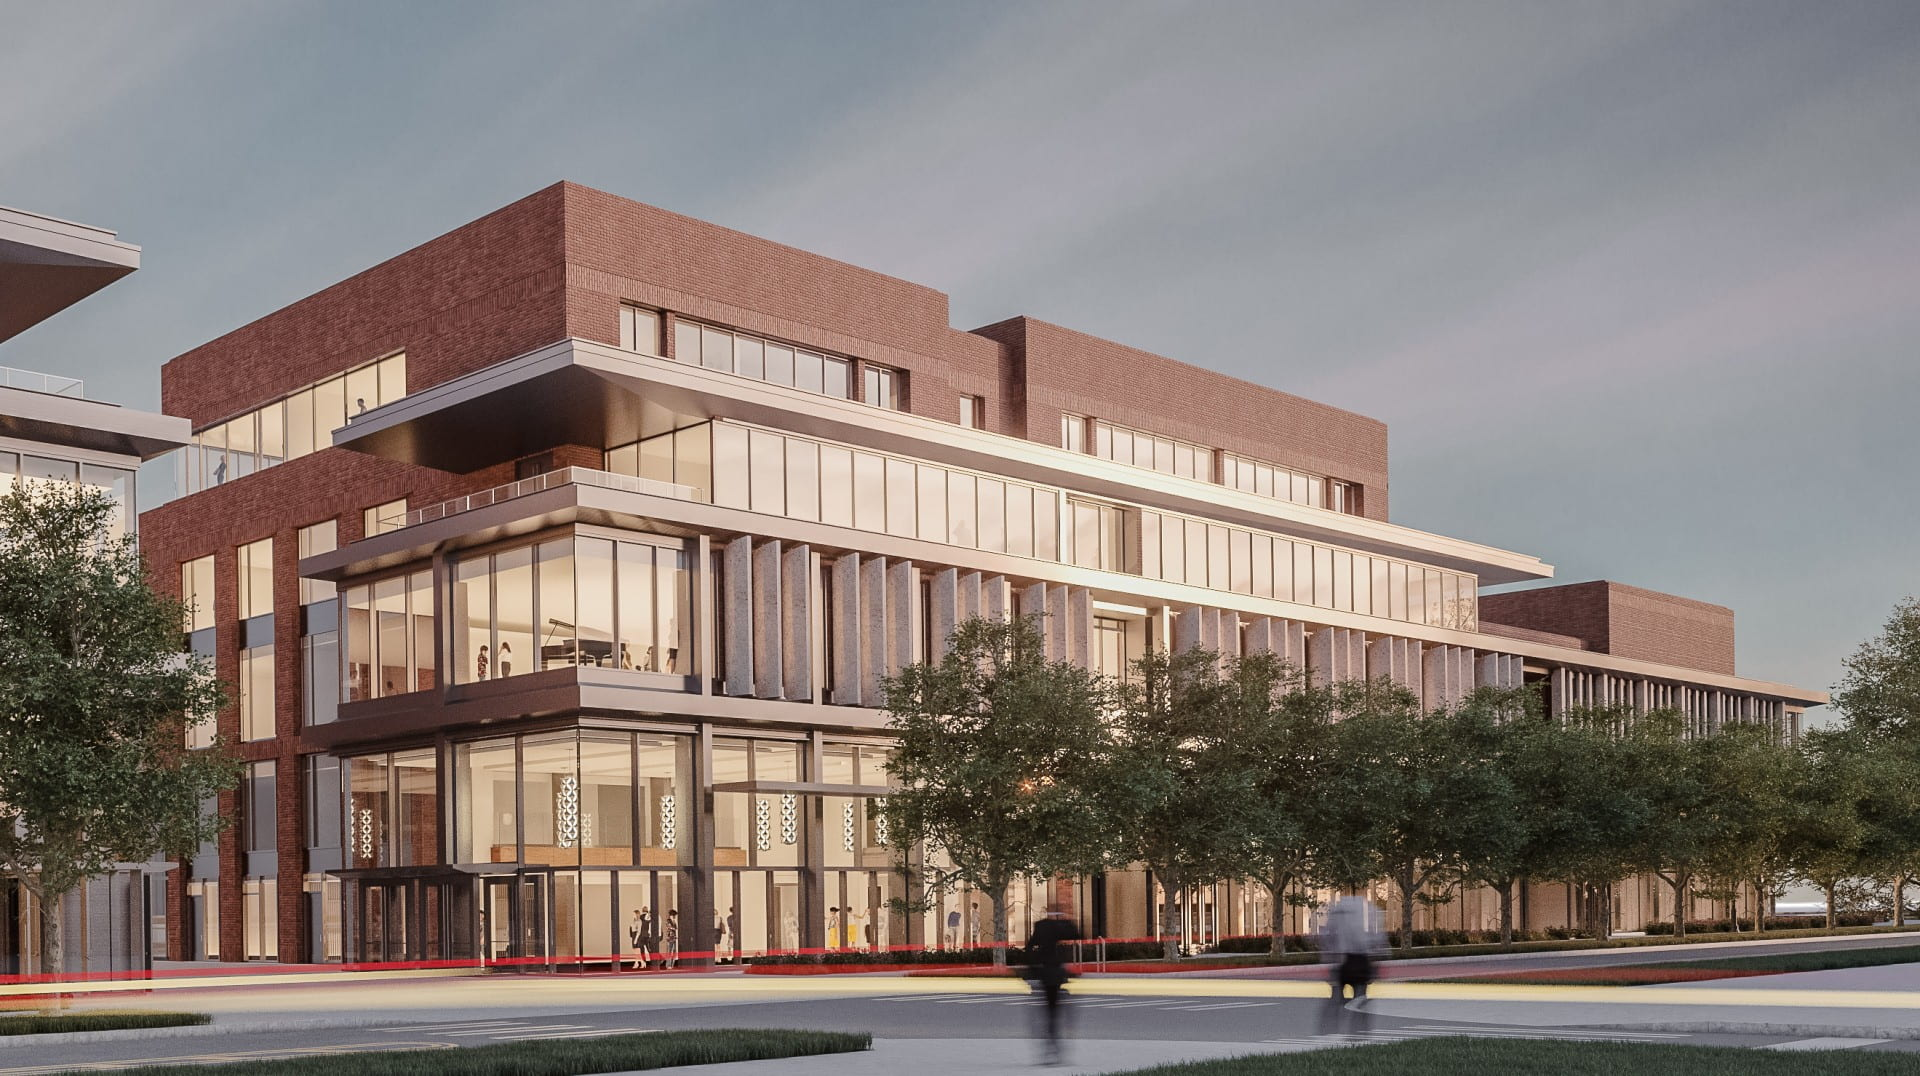 A rendering of of the Timashev Family Music Building that is under construction. Credit: Courtesy of Ohio State